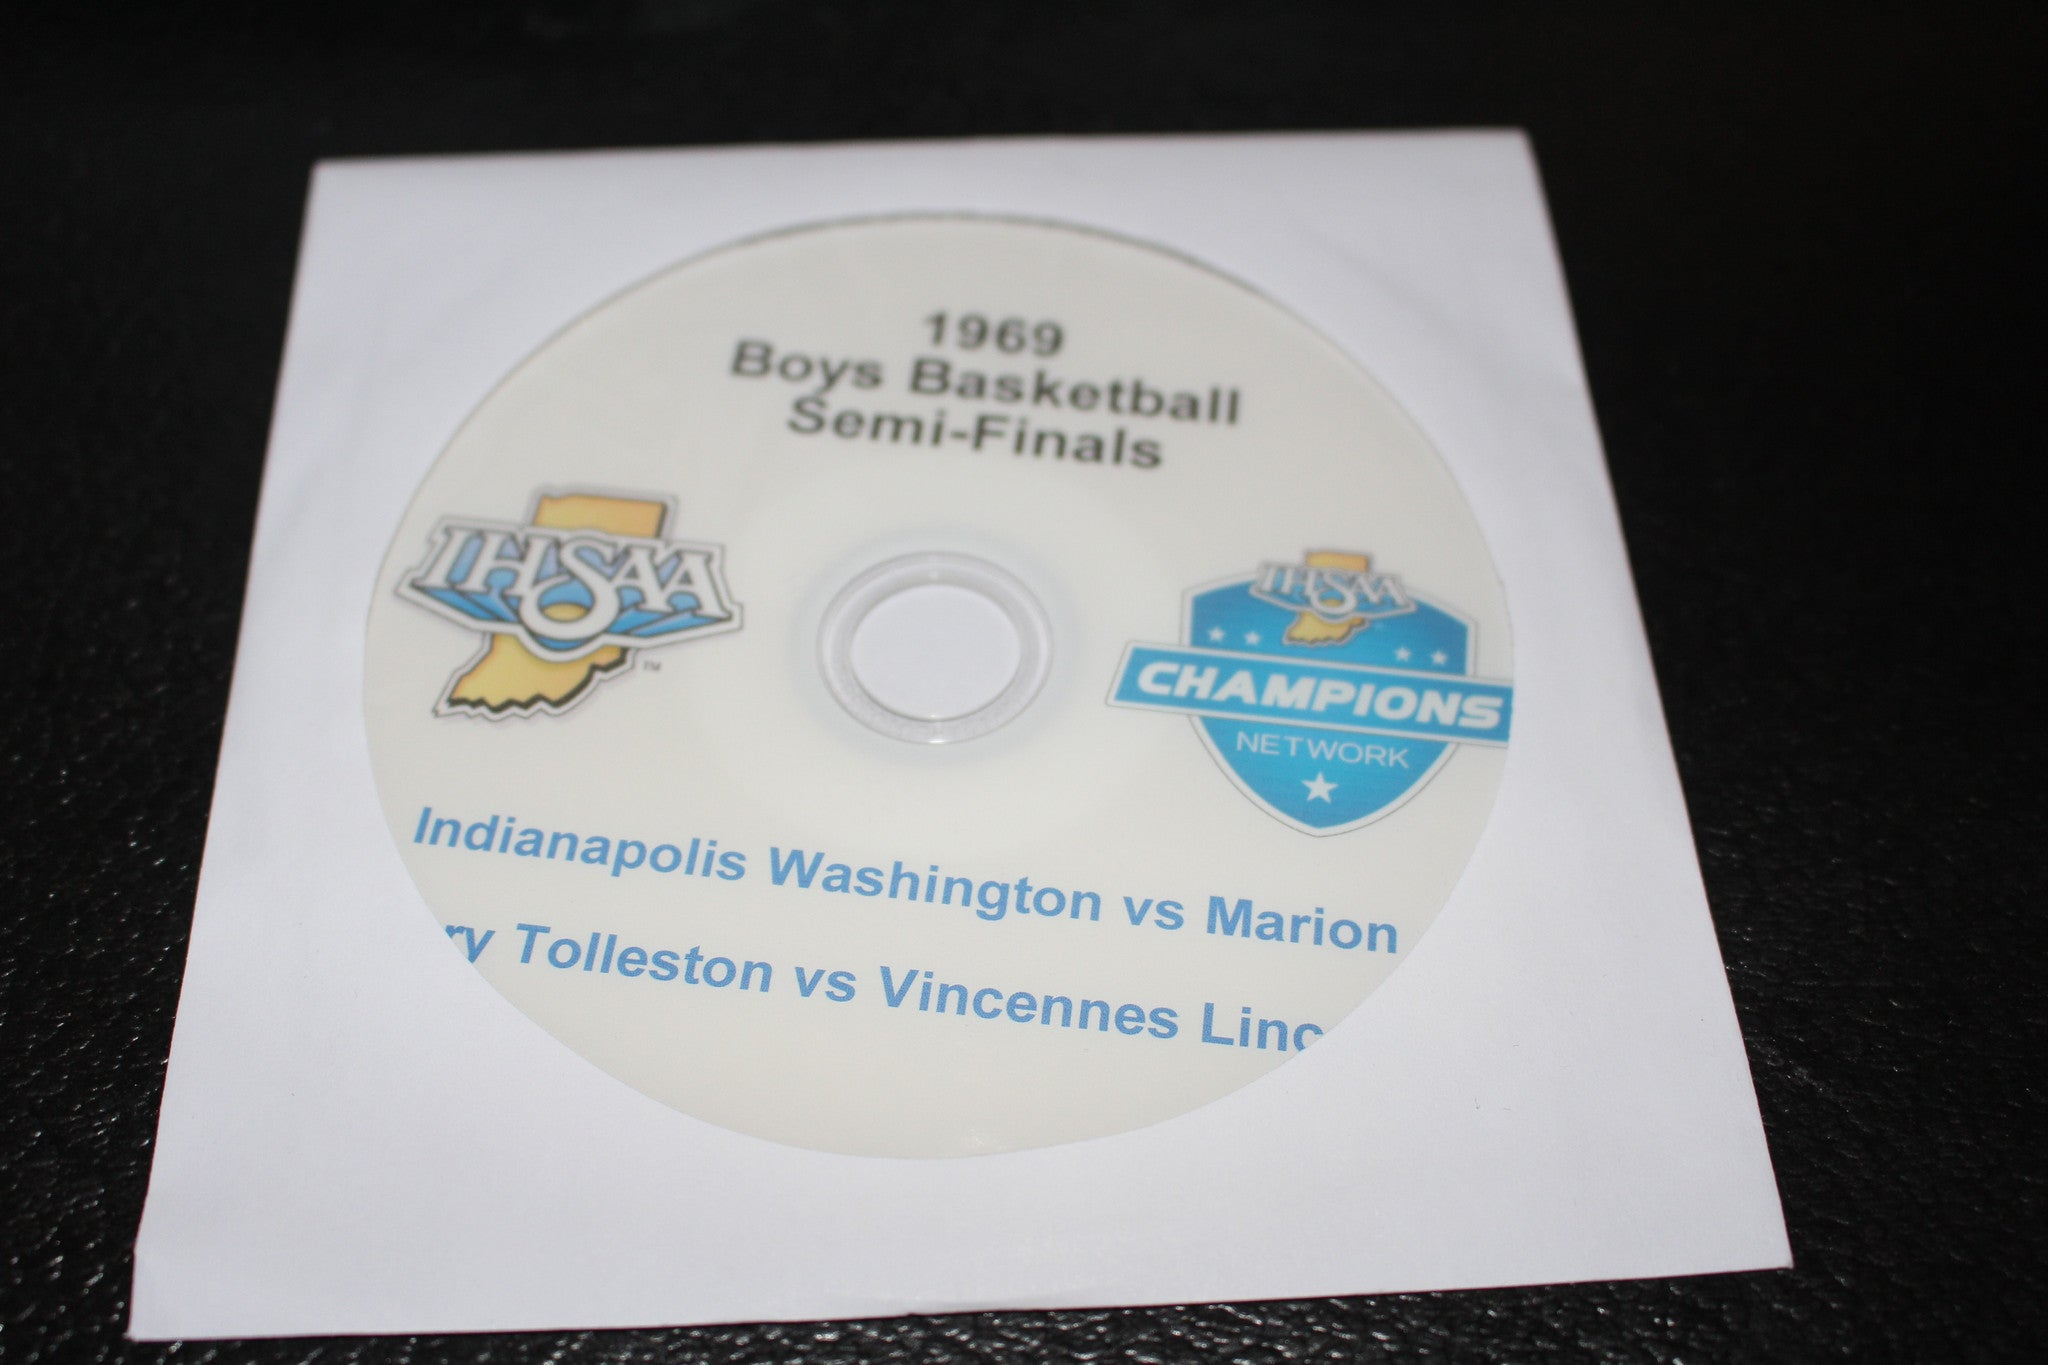 1969 Indiana High School Basketball State Semi Finals DVD - Vintage Indy Sports